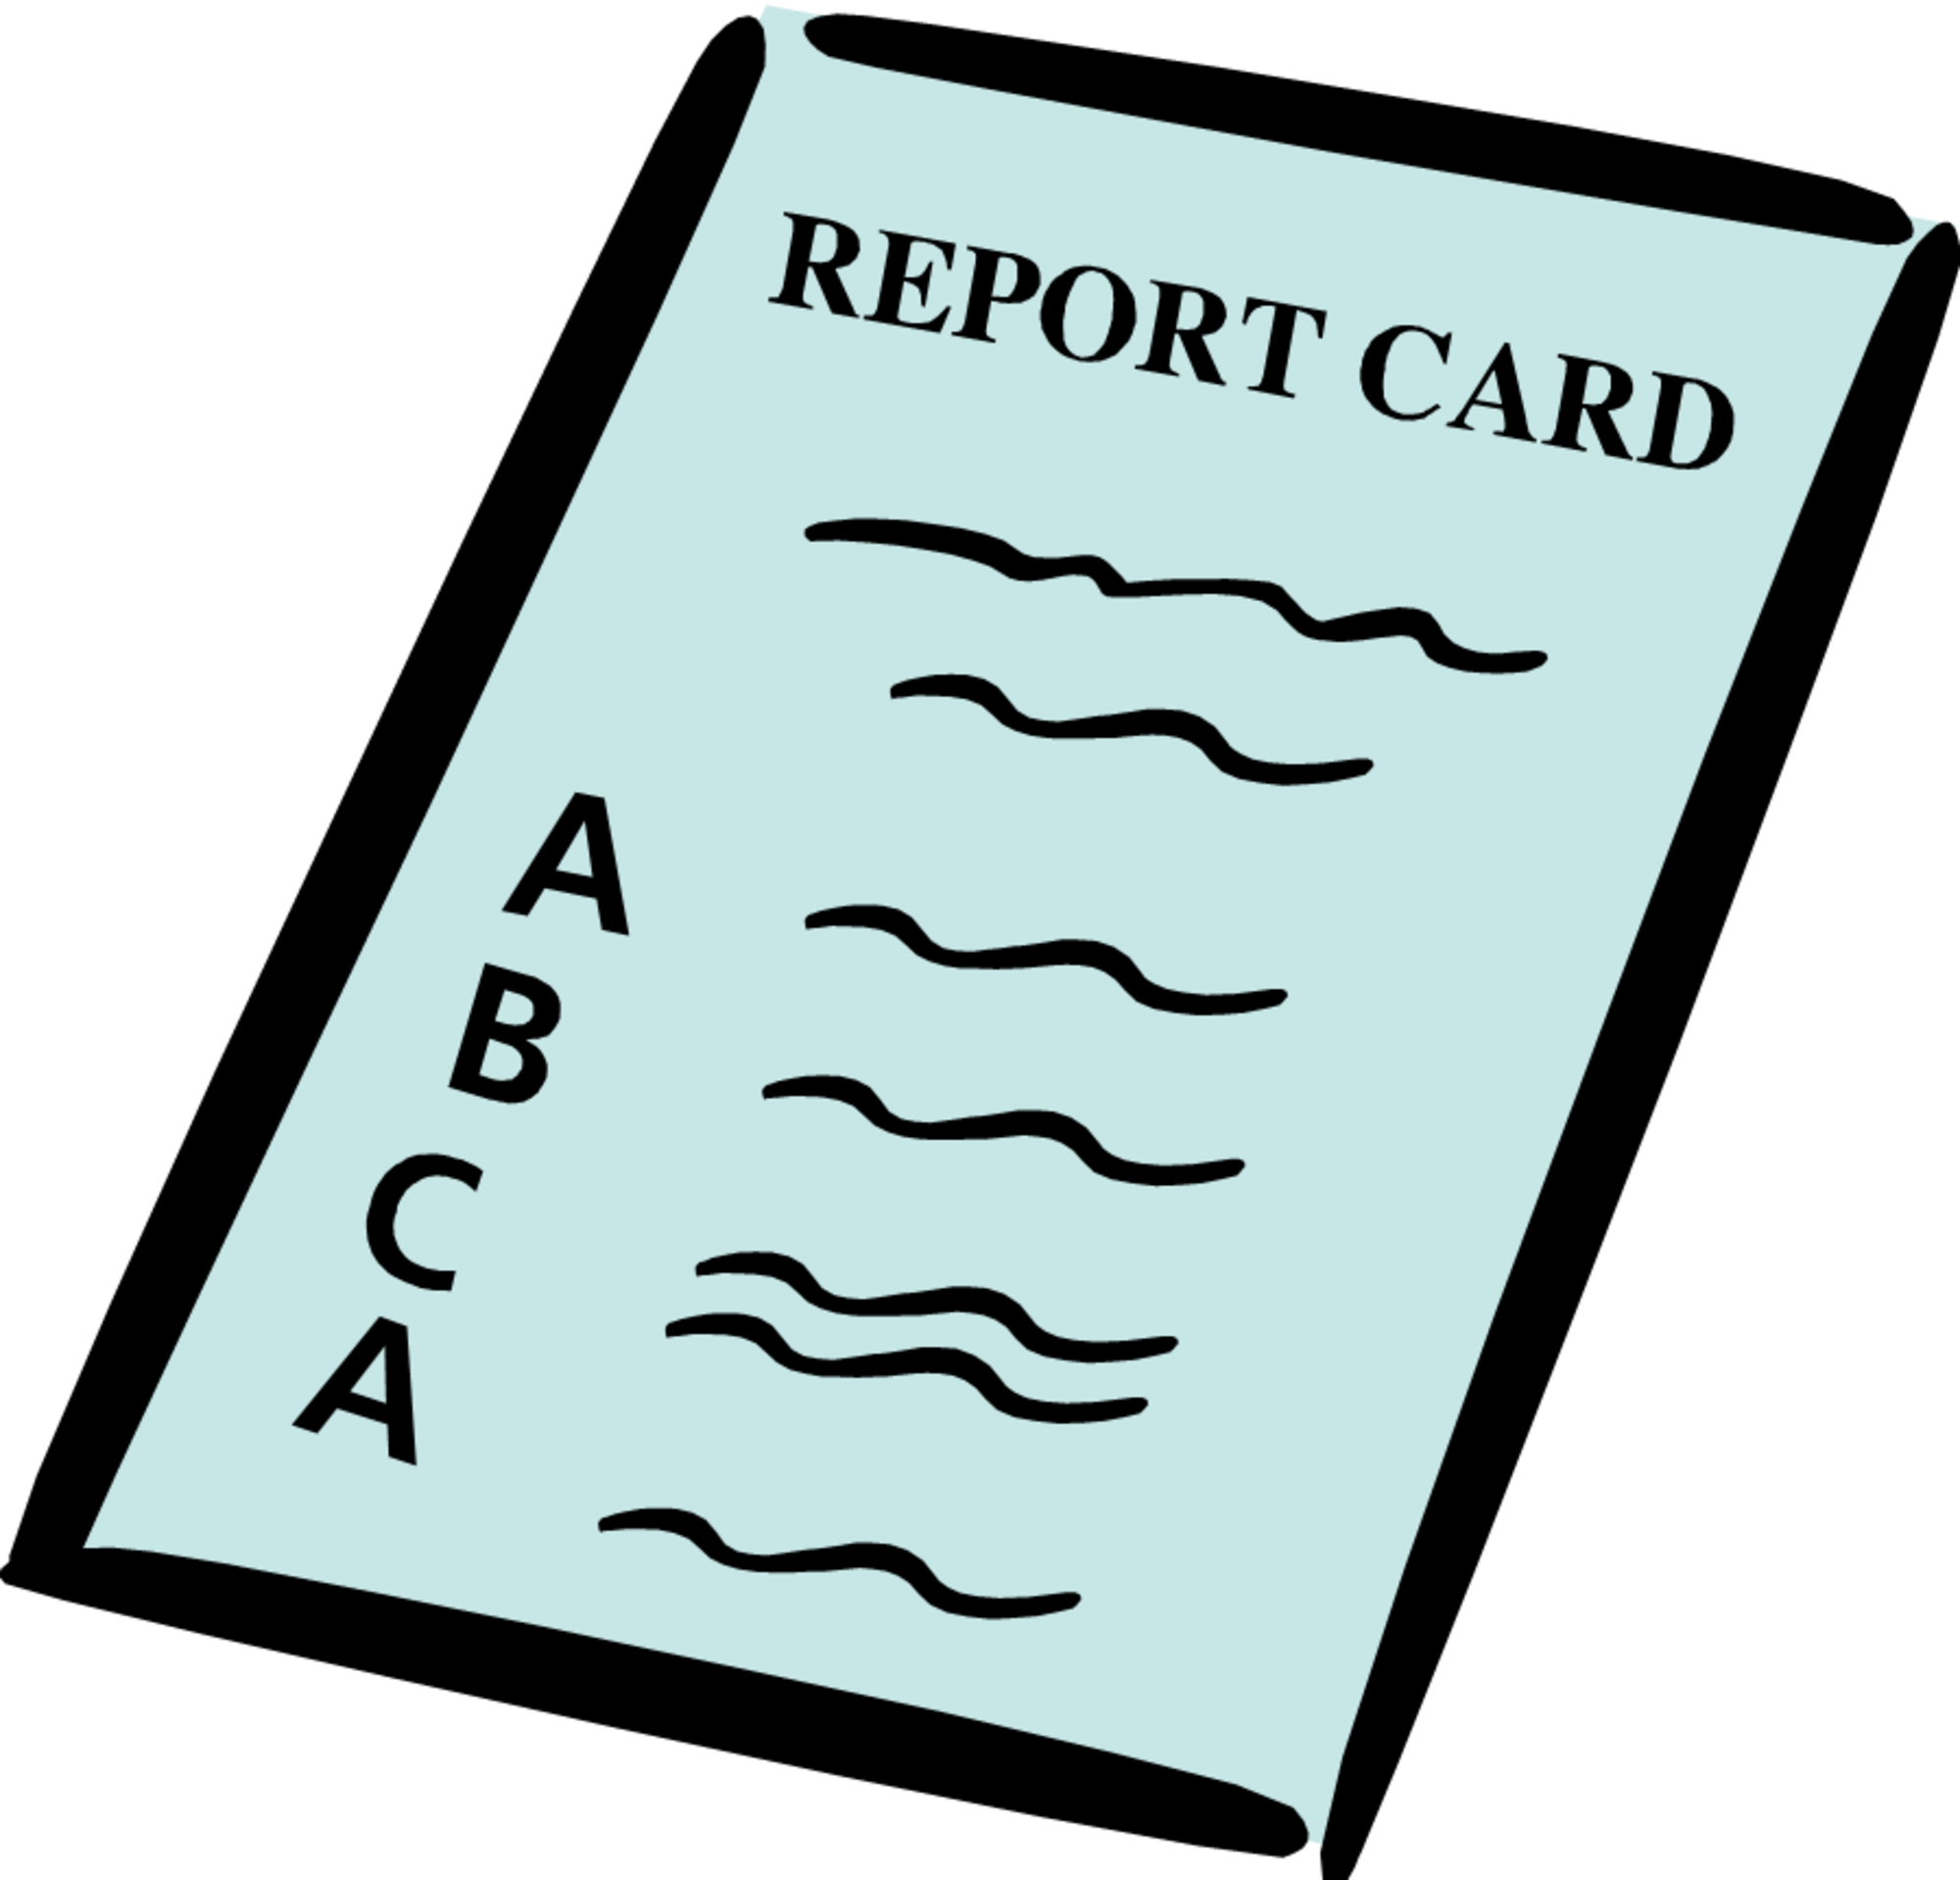 For those who did. Grades clipart 4.0